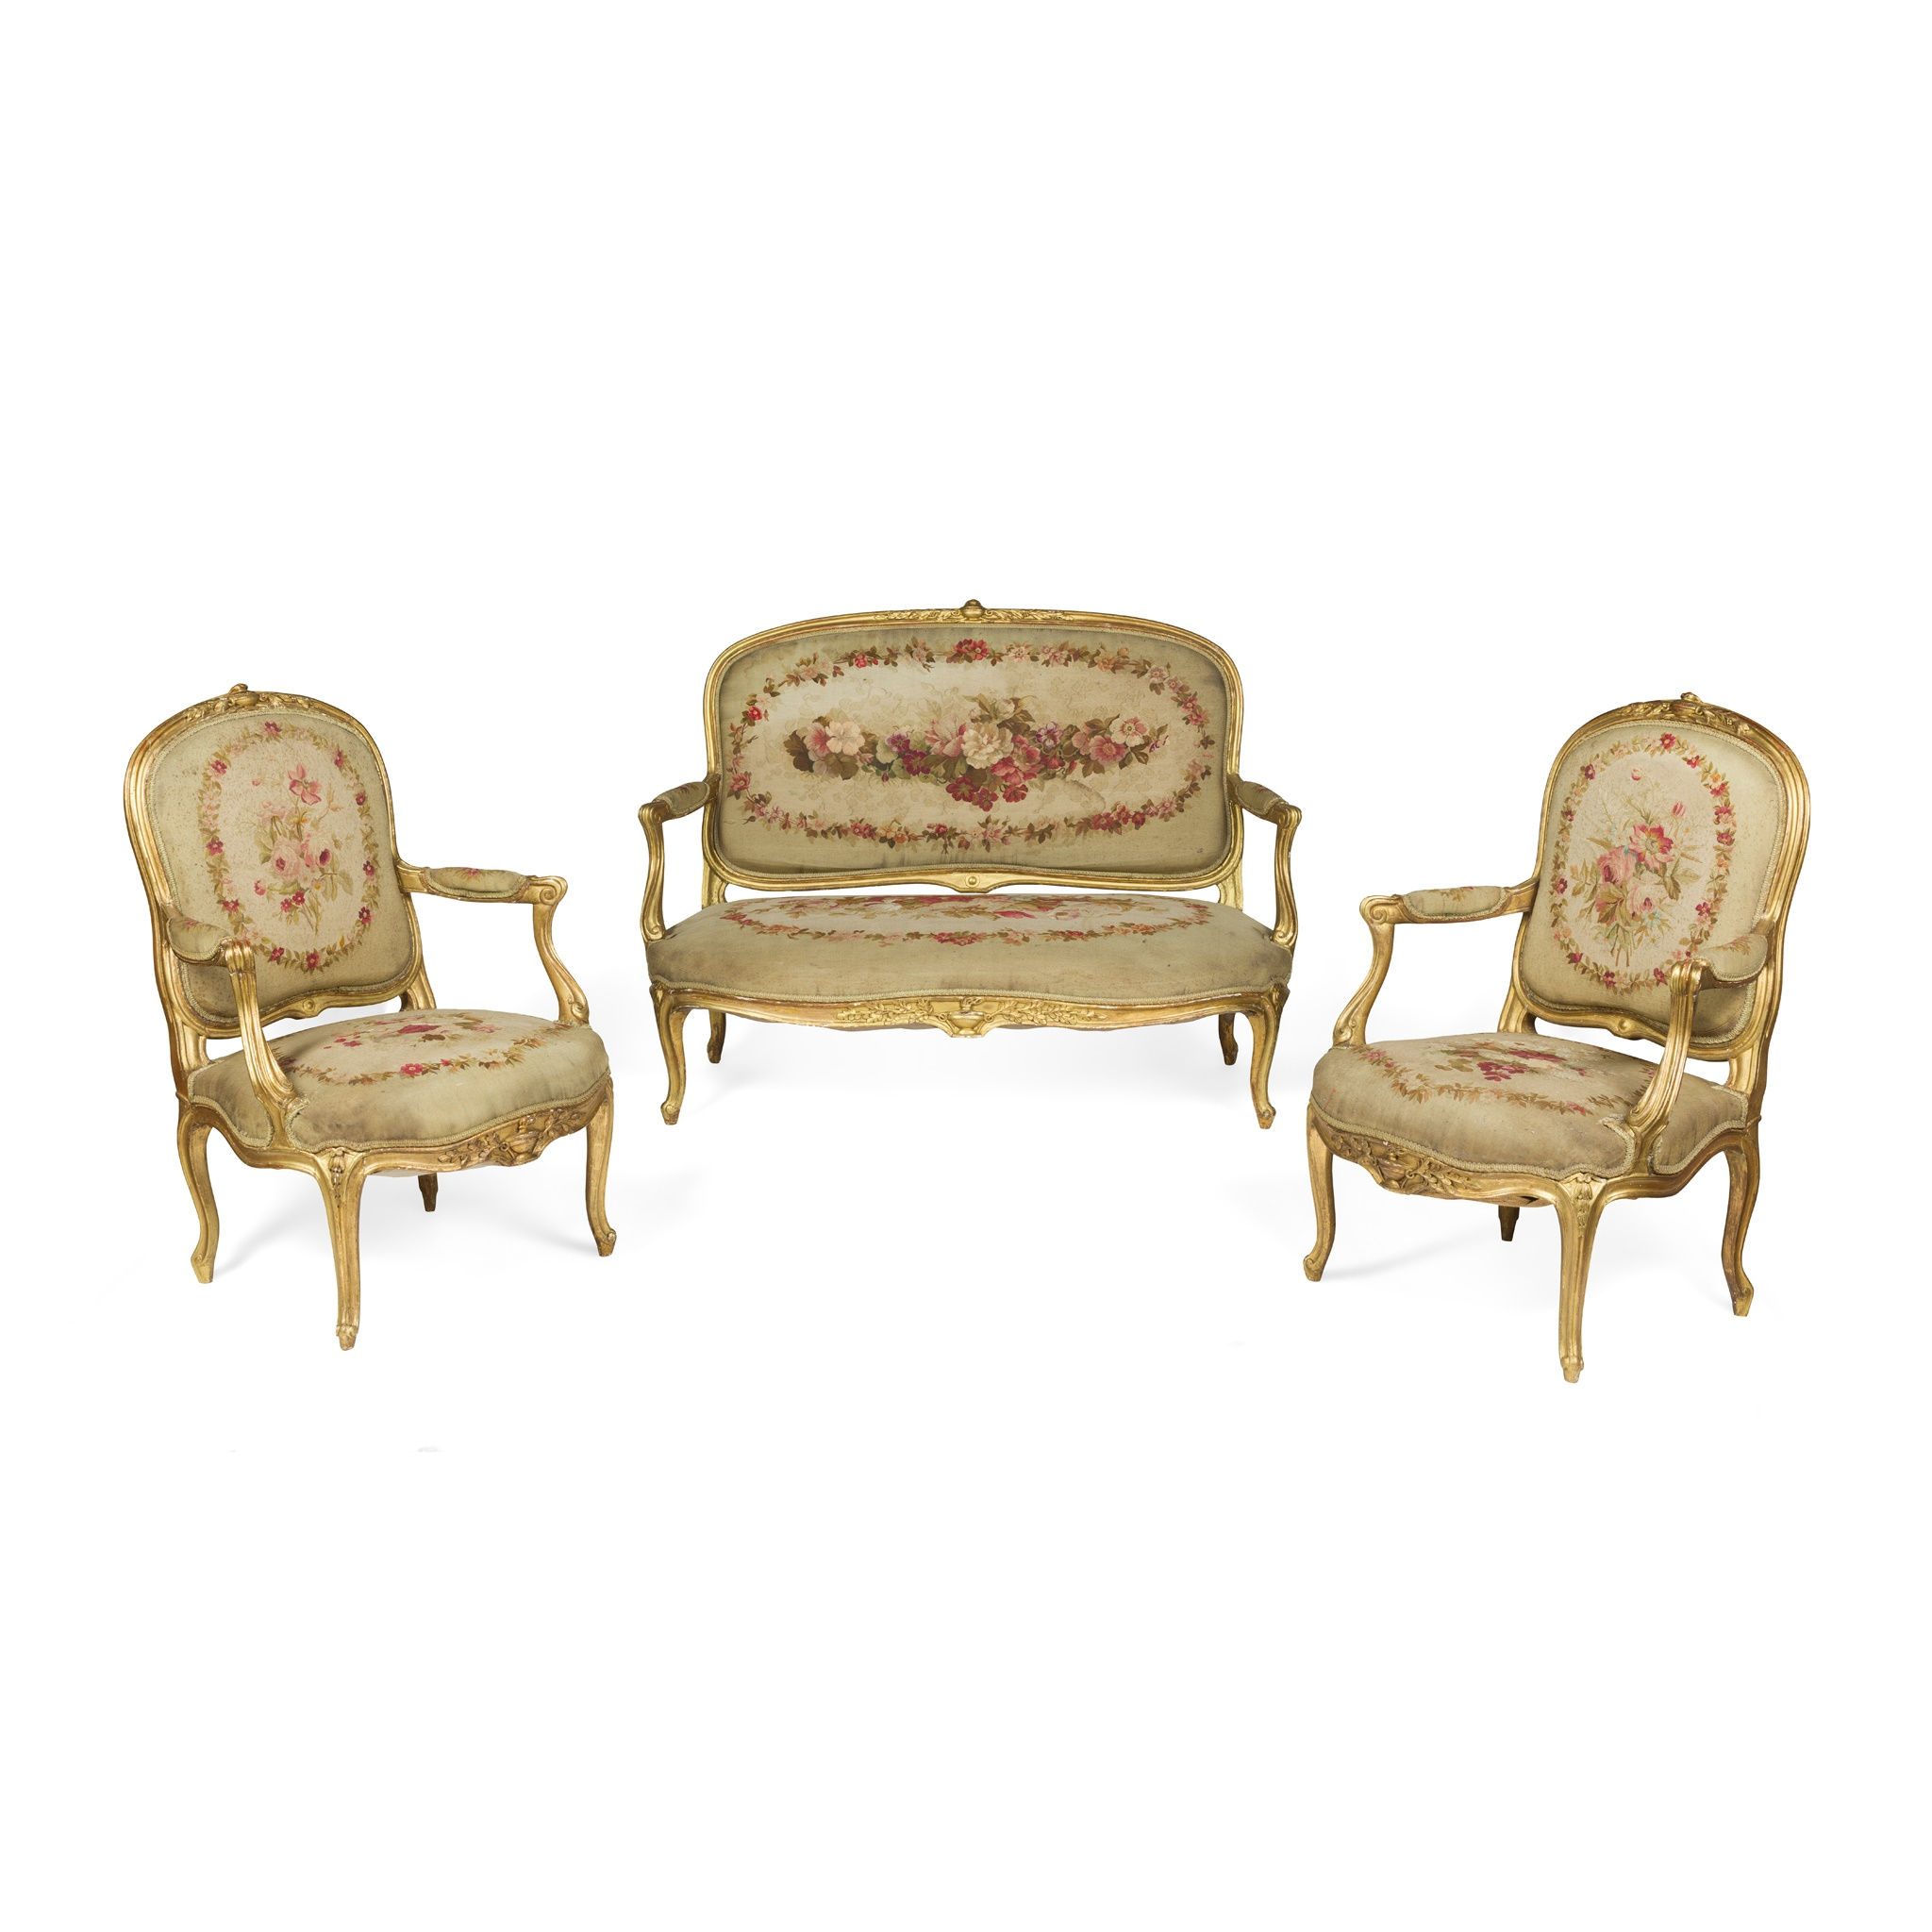 FRENCH THREE PIECE GILTWOOD AND AUBUSSON SALON SUITE 19TH CENTURY